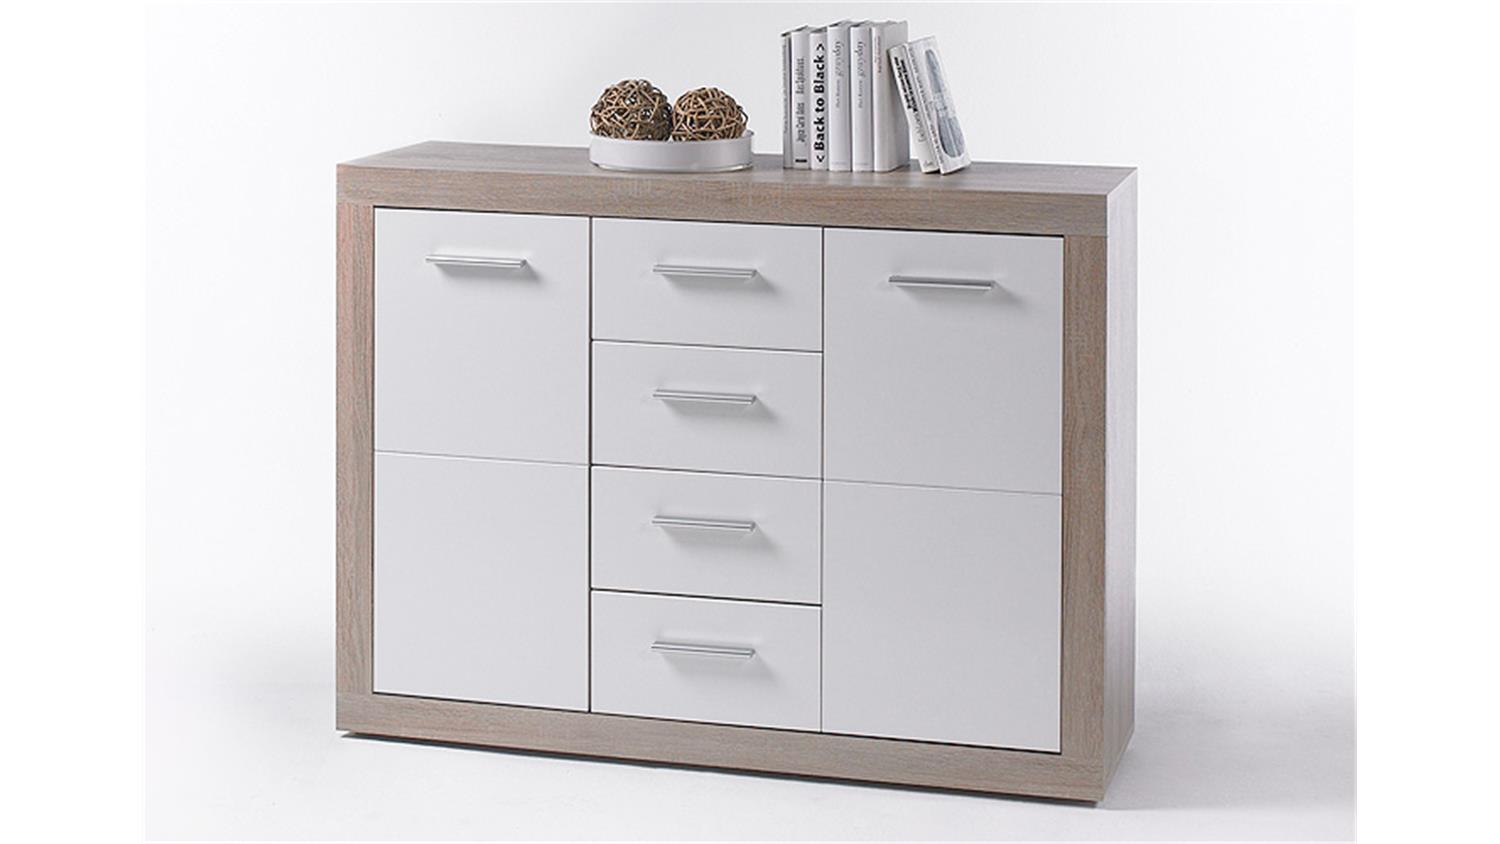 Kommode cancan 4 sideboard highboard in wei sonoma eiche for Kommode highboard weiss